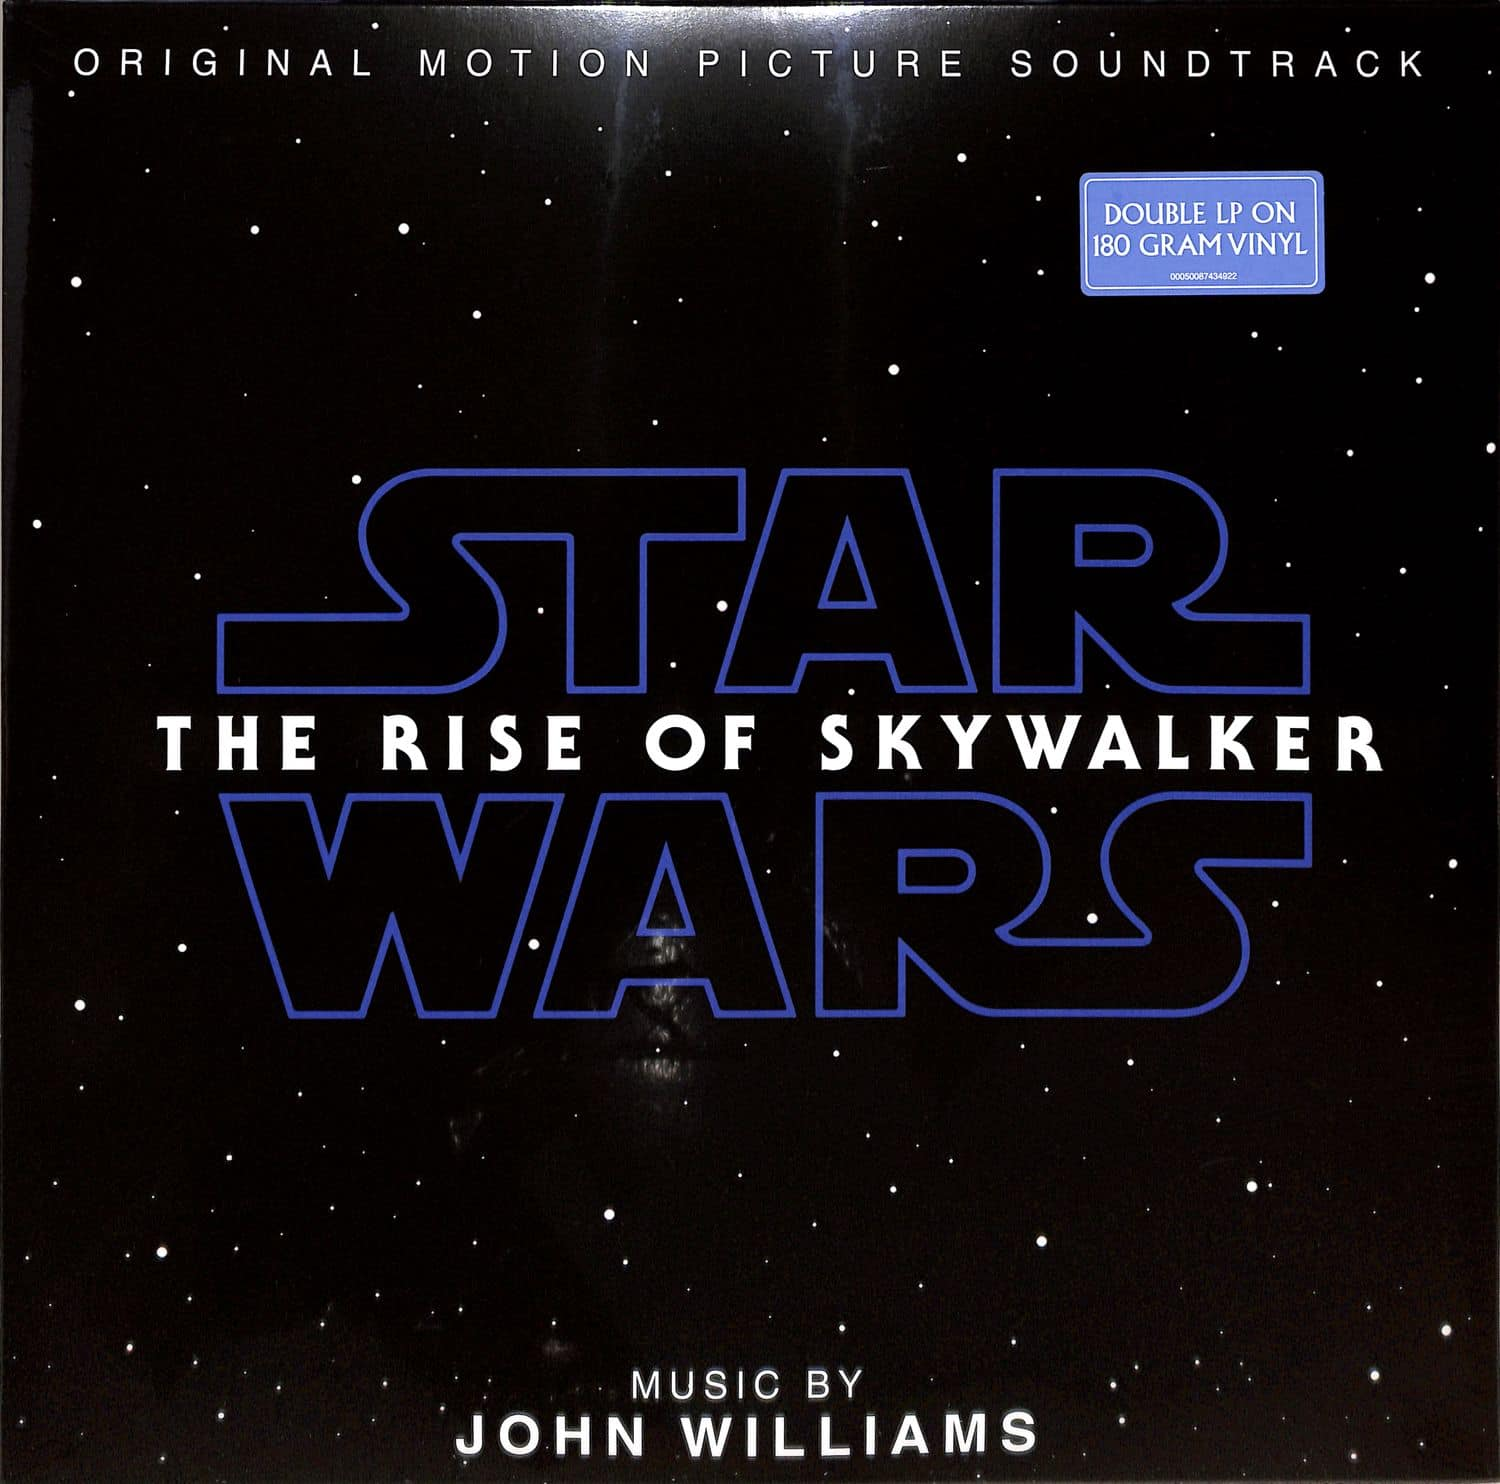 John Williams - STAR WARS: THE RISE OF SKYWALKER O.S.T.